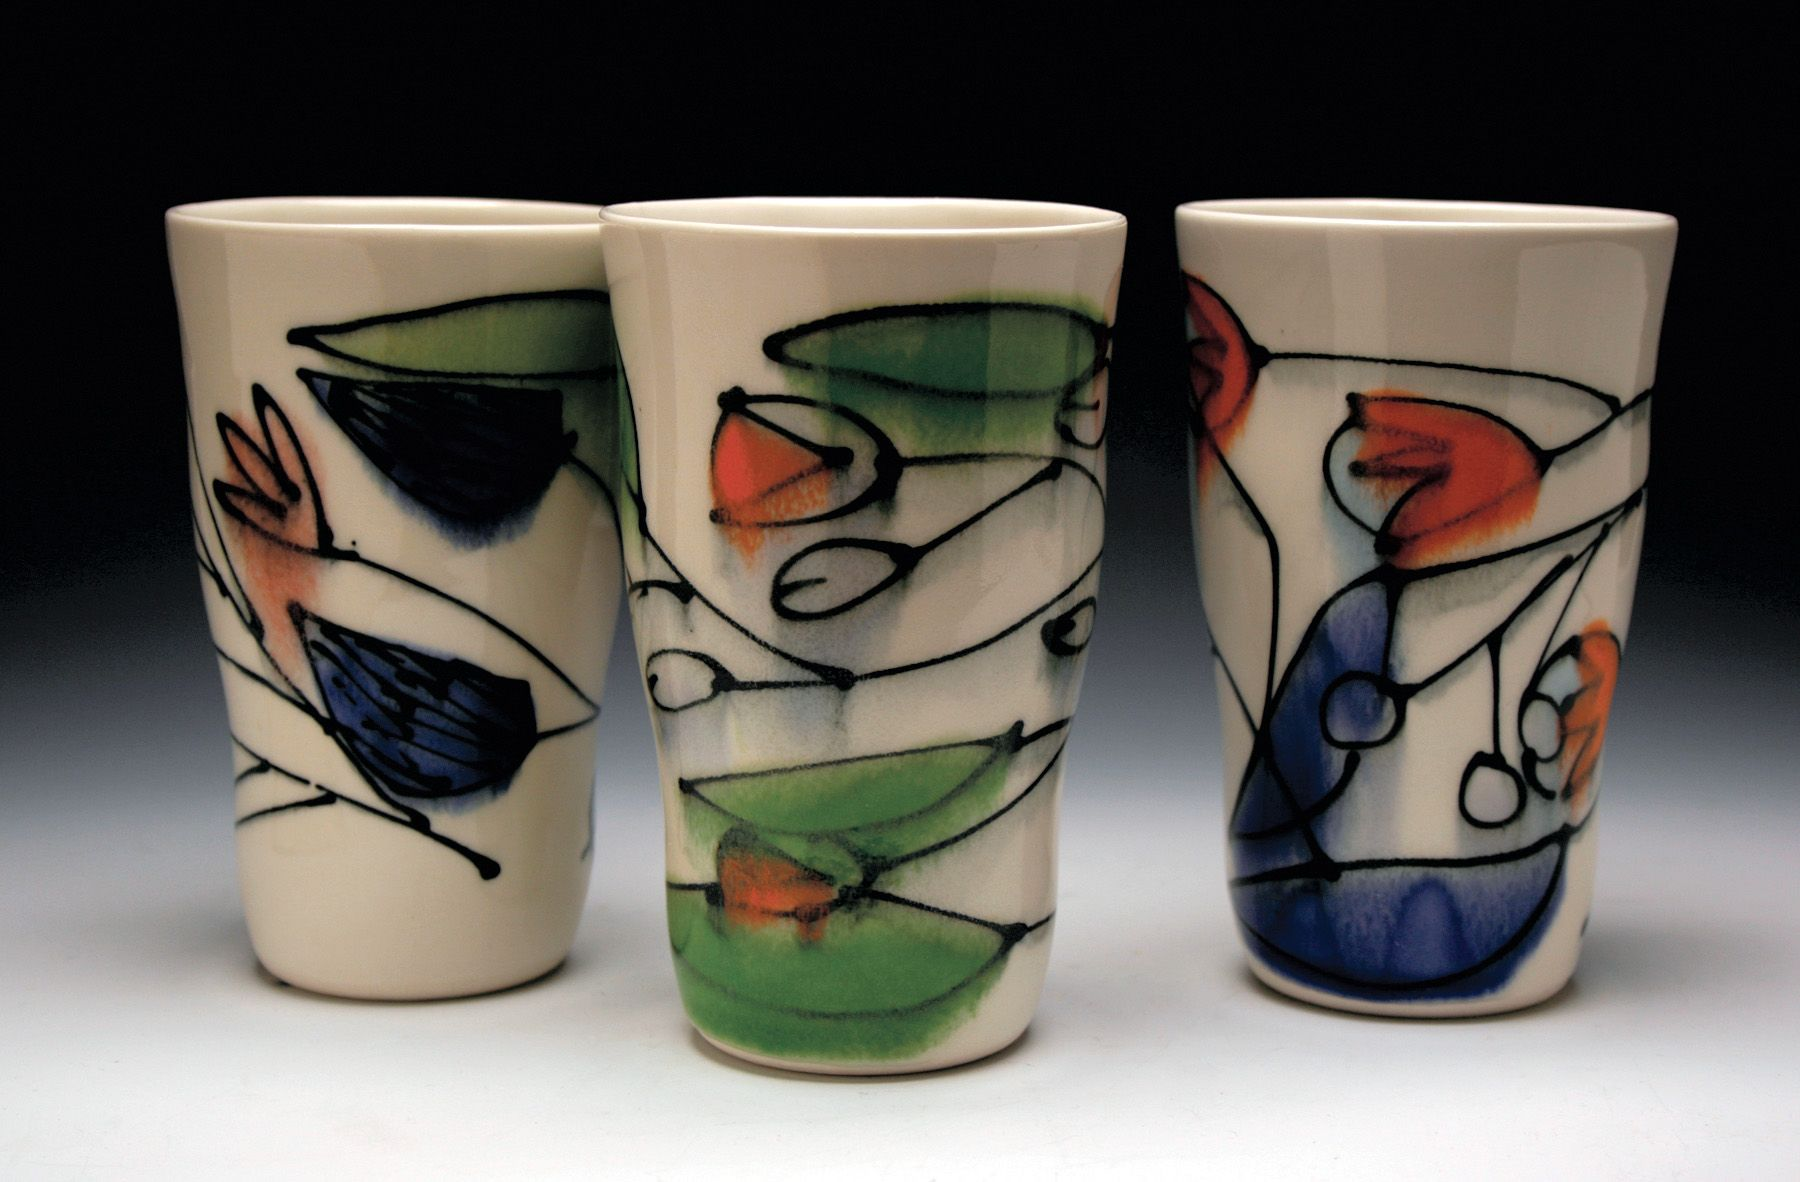 Naomi Cleary S Tumblers Naomi S Studio Is Located In Philadelphia Pennsylvania Cleary Was Selected As One Of Cera Ceramic Arts Daily Ceramics Monthly Potter